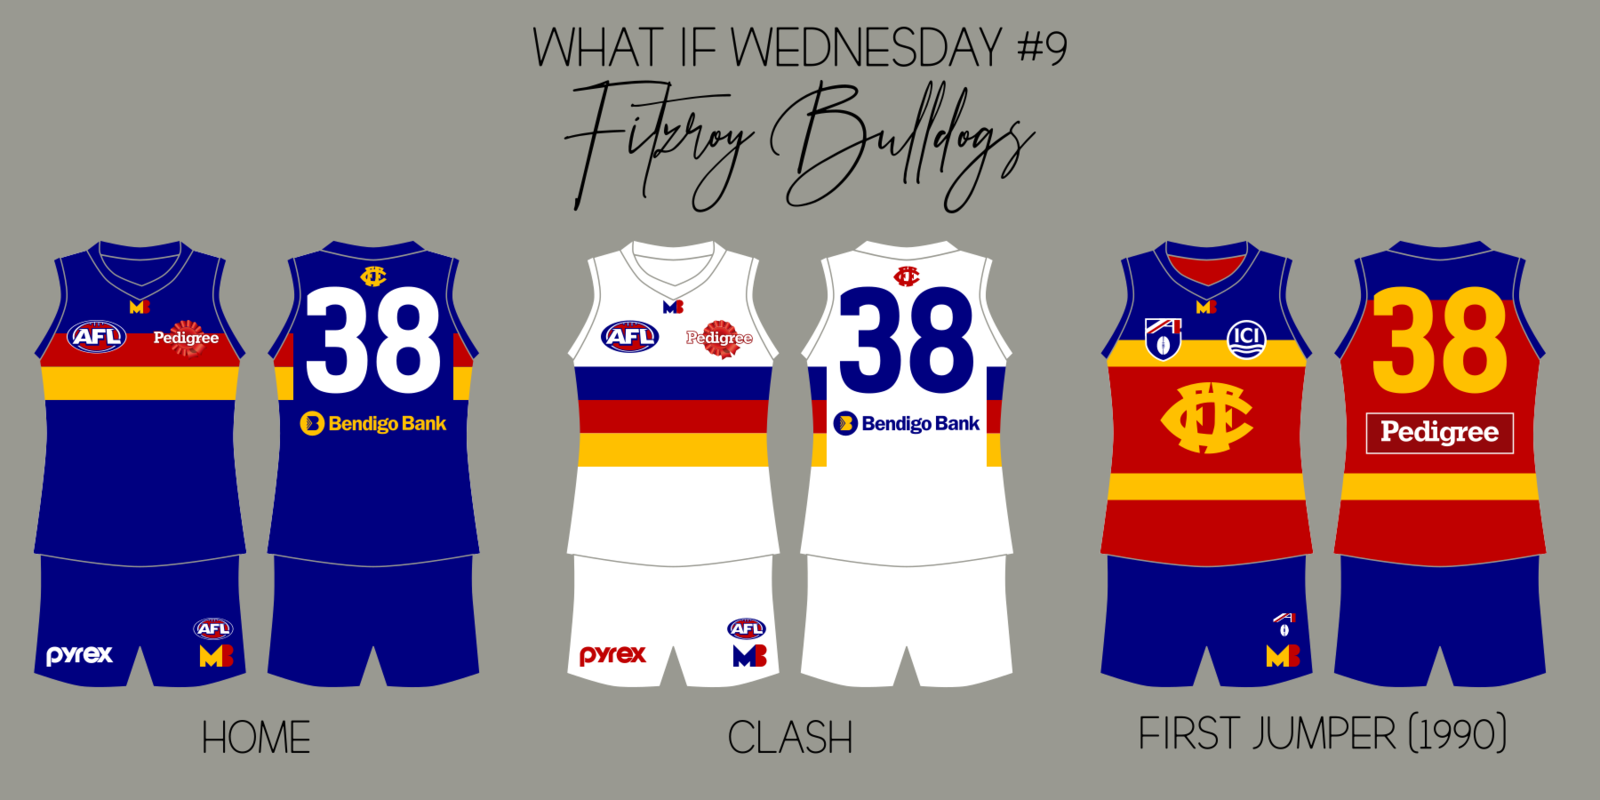 09 Fitzroy Bulldogs.png